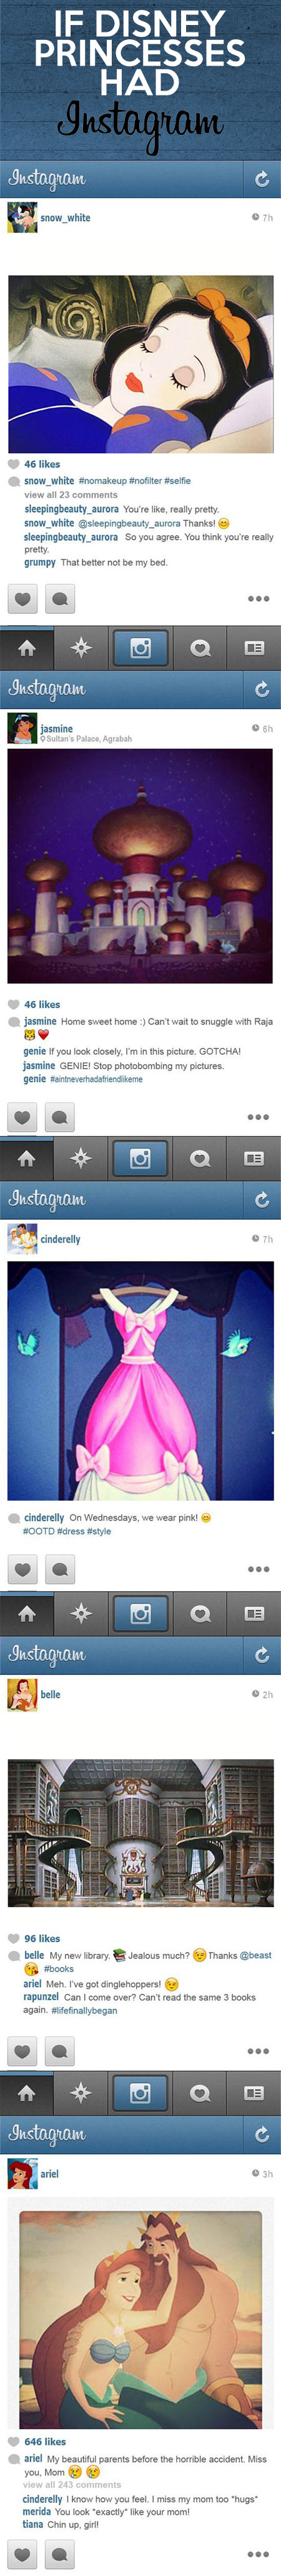 funny-Disney-princess-Instagram